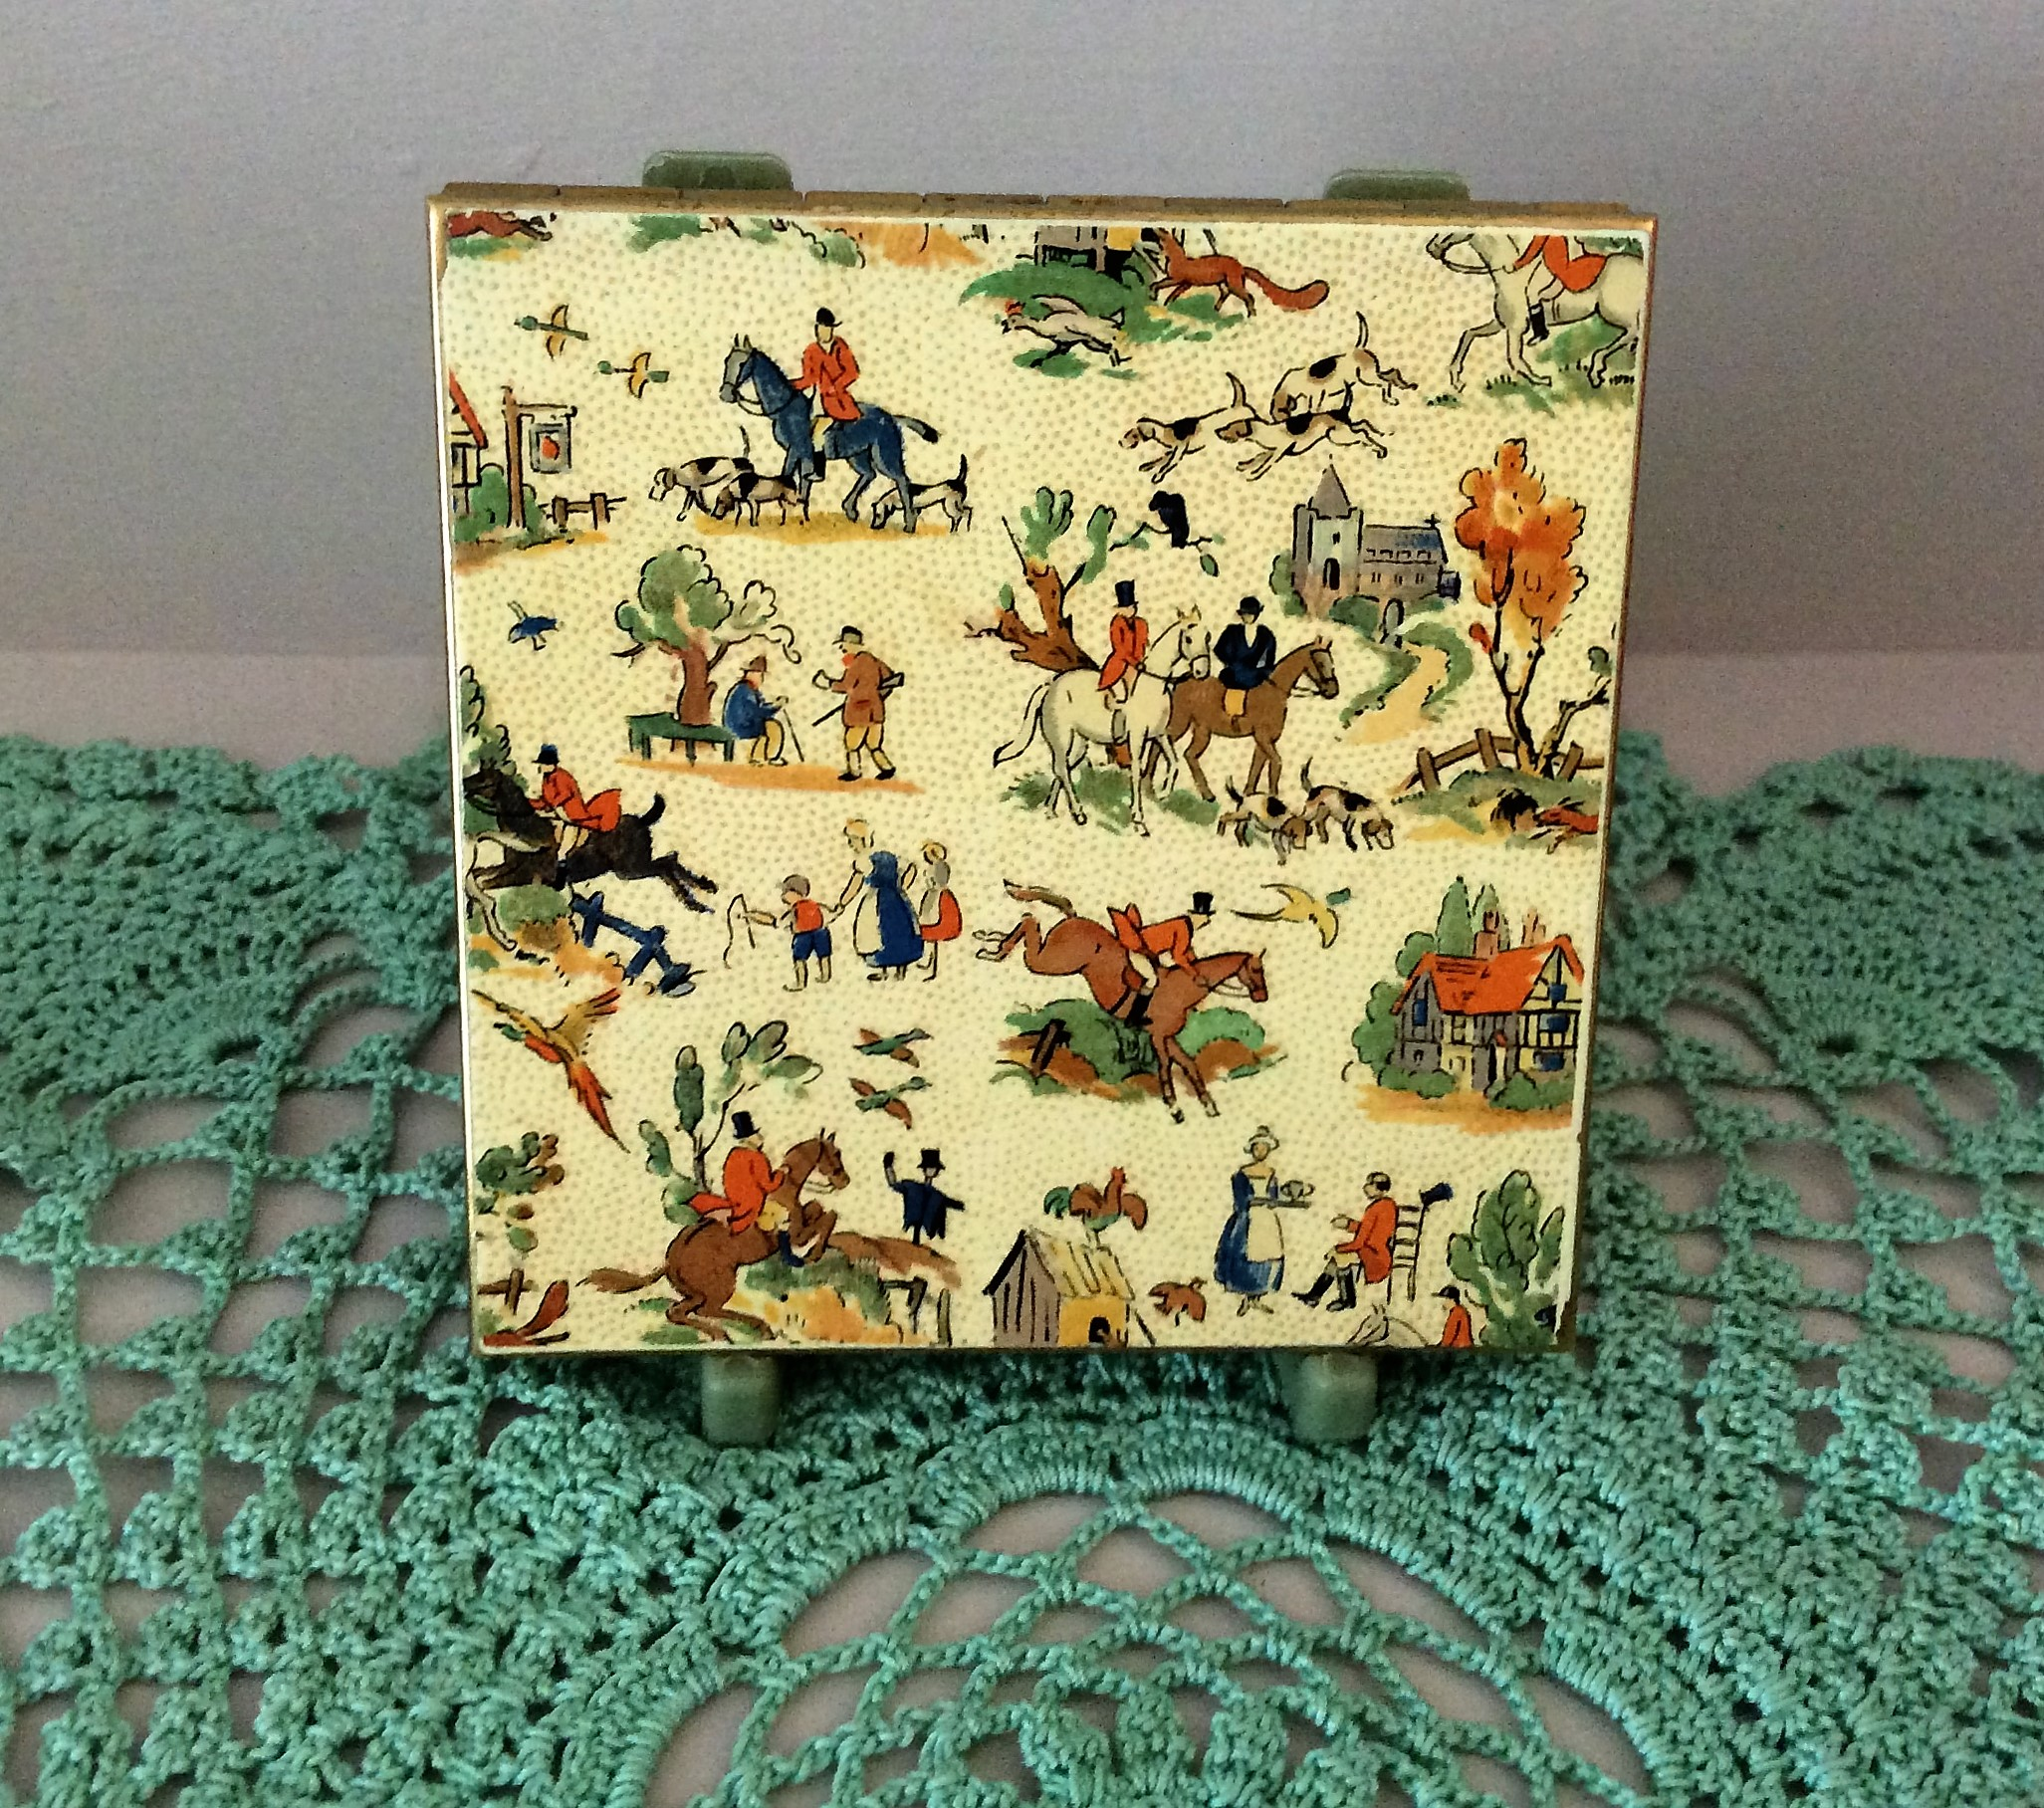 Rare Circa 1950's Le Rage Enamel Hunting Scene and Gold Metal Powder Compact